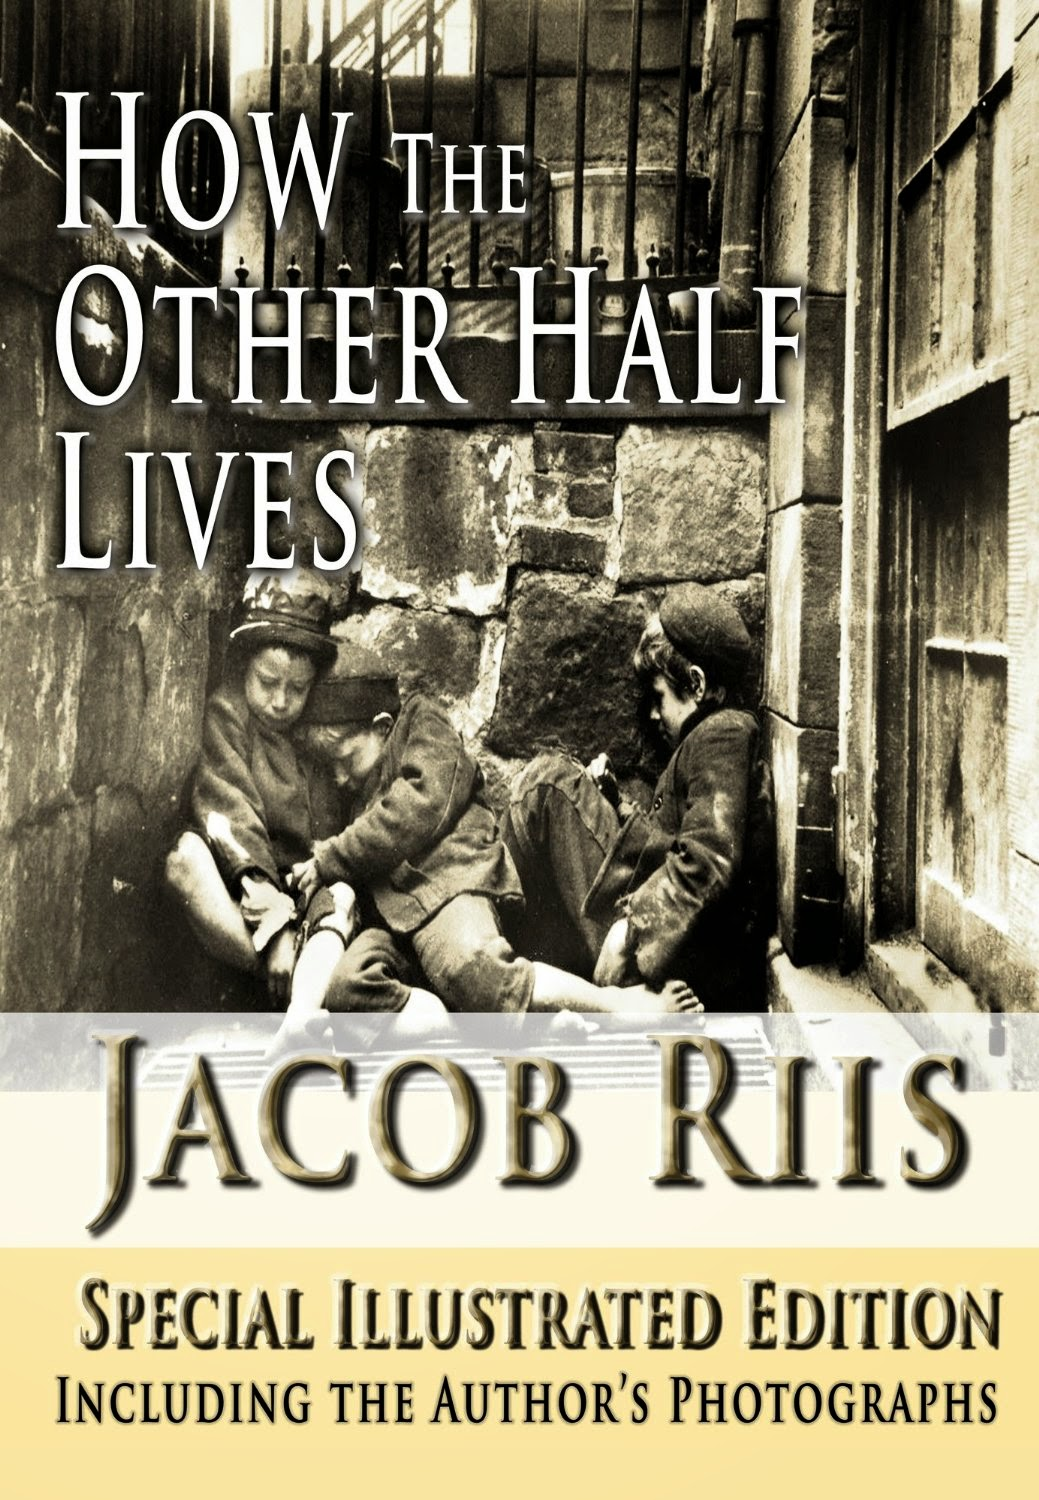 the social inequalities in jacob riis how the other half lives Jacob a riis: how the other half lives features photographs by riis and his contemporaries riis advanced social reform in early twentieth-century america.